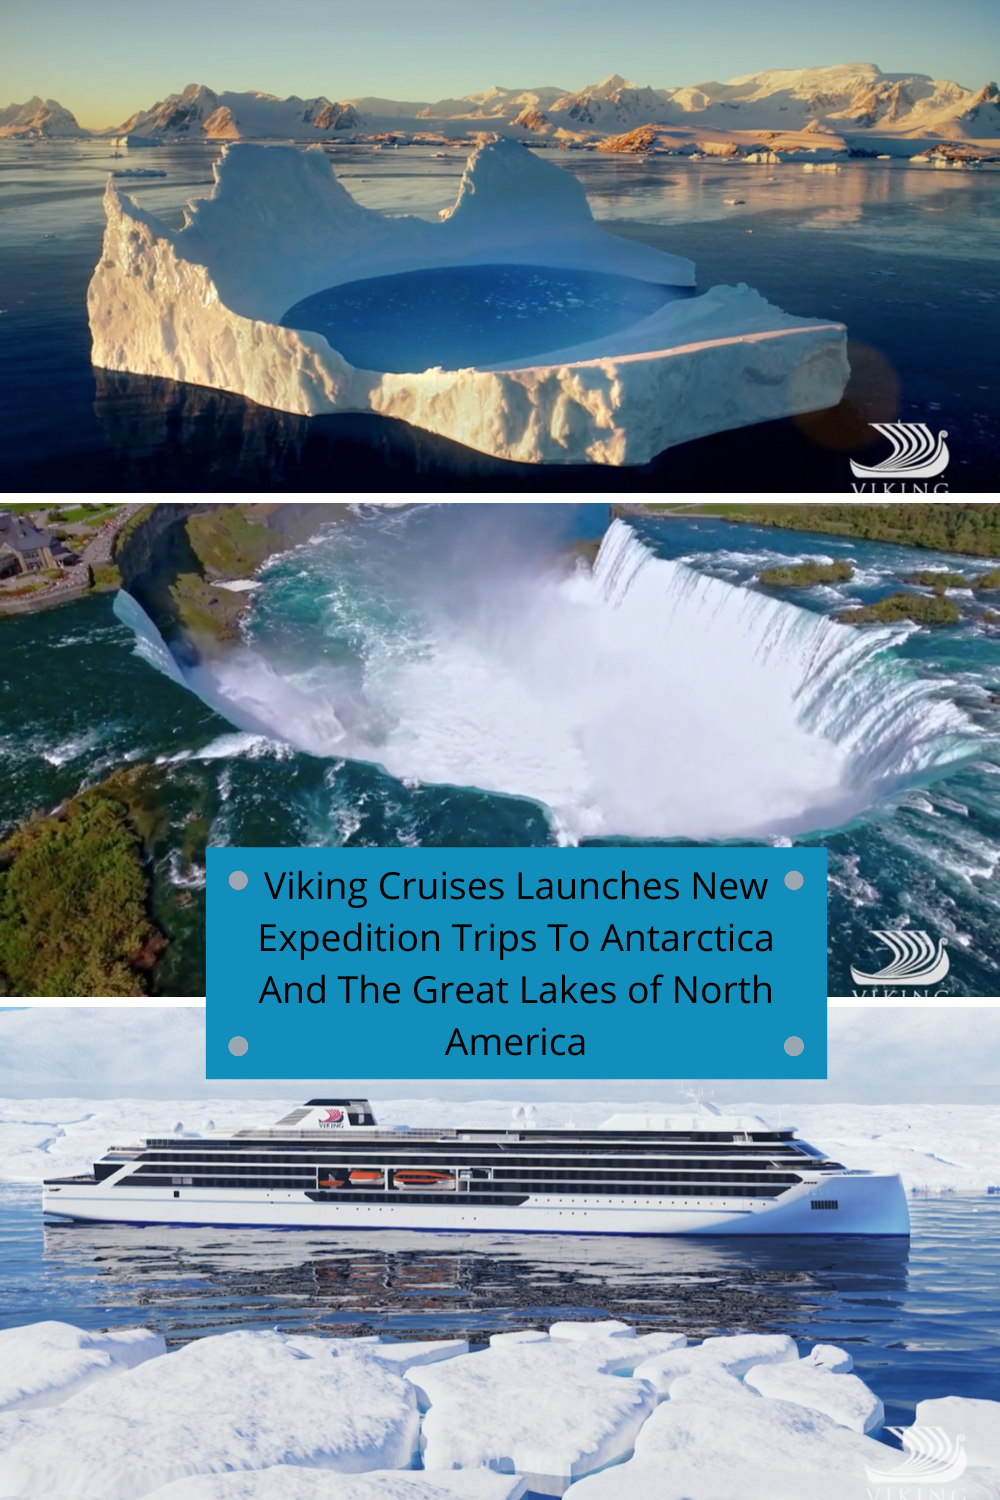 Viking Cruises Launches New Expedition Trips To Antarctica And The Great Lakes Of North America Tourist Meets Traveler Viking Cruises Viking Cruises Rivers Cruise